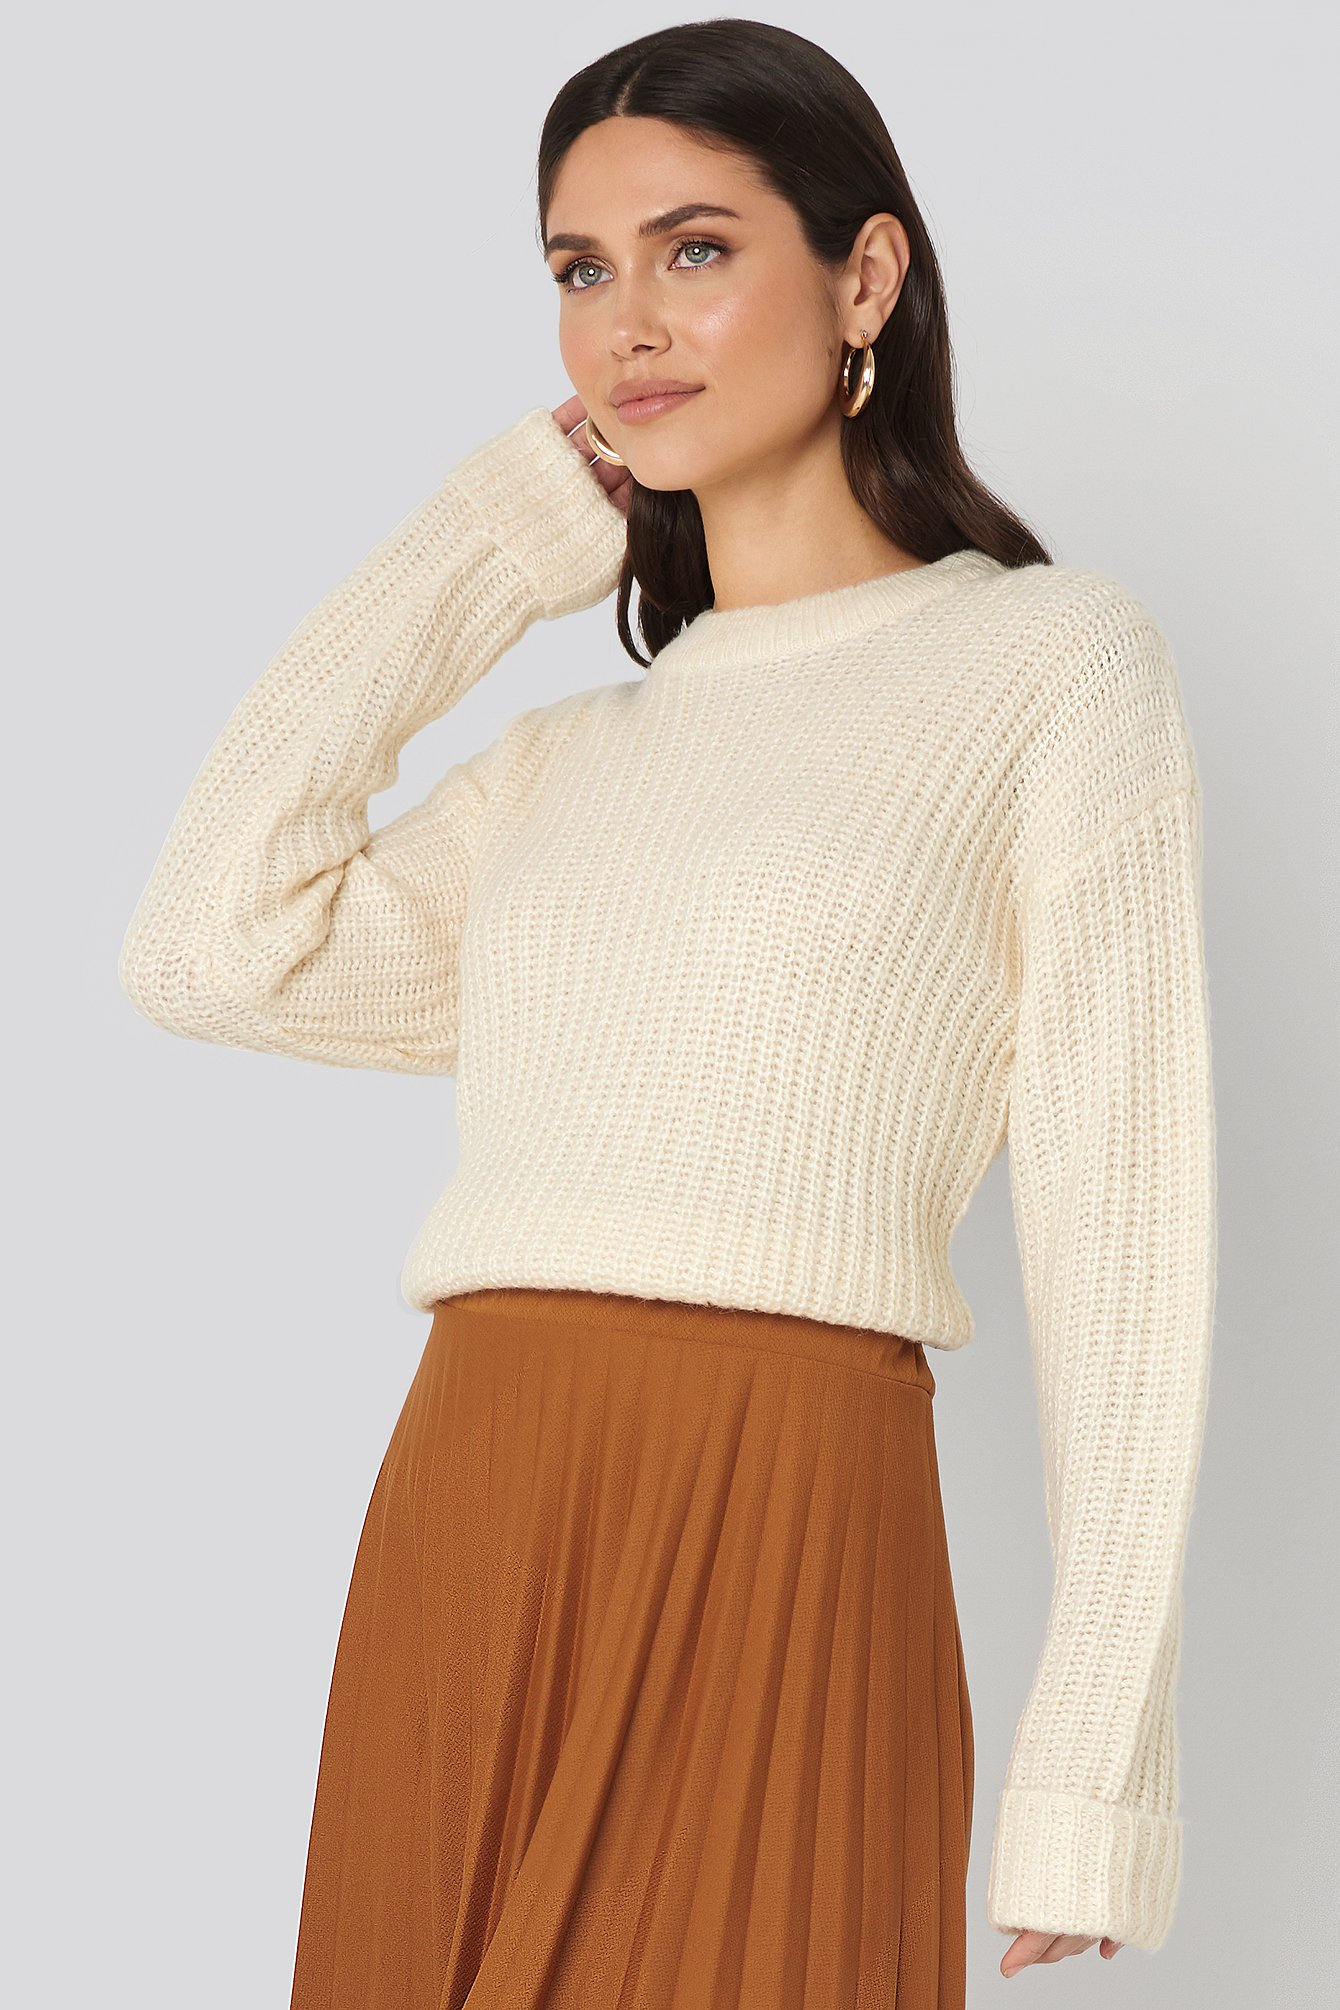 NA-KD Folded Sleeve Round Neck Knitted Sweater - White